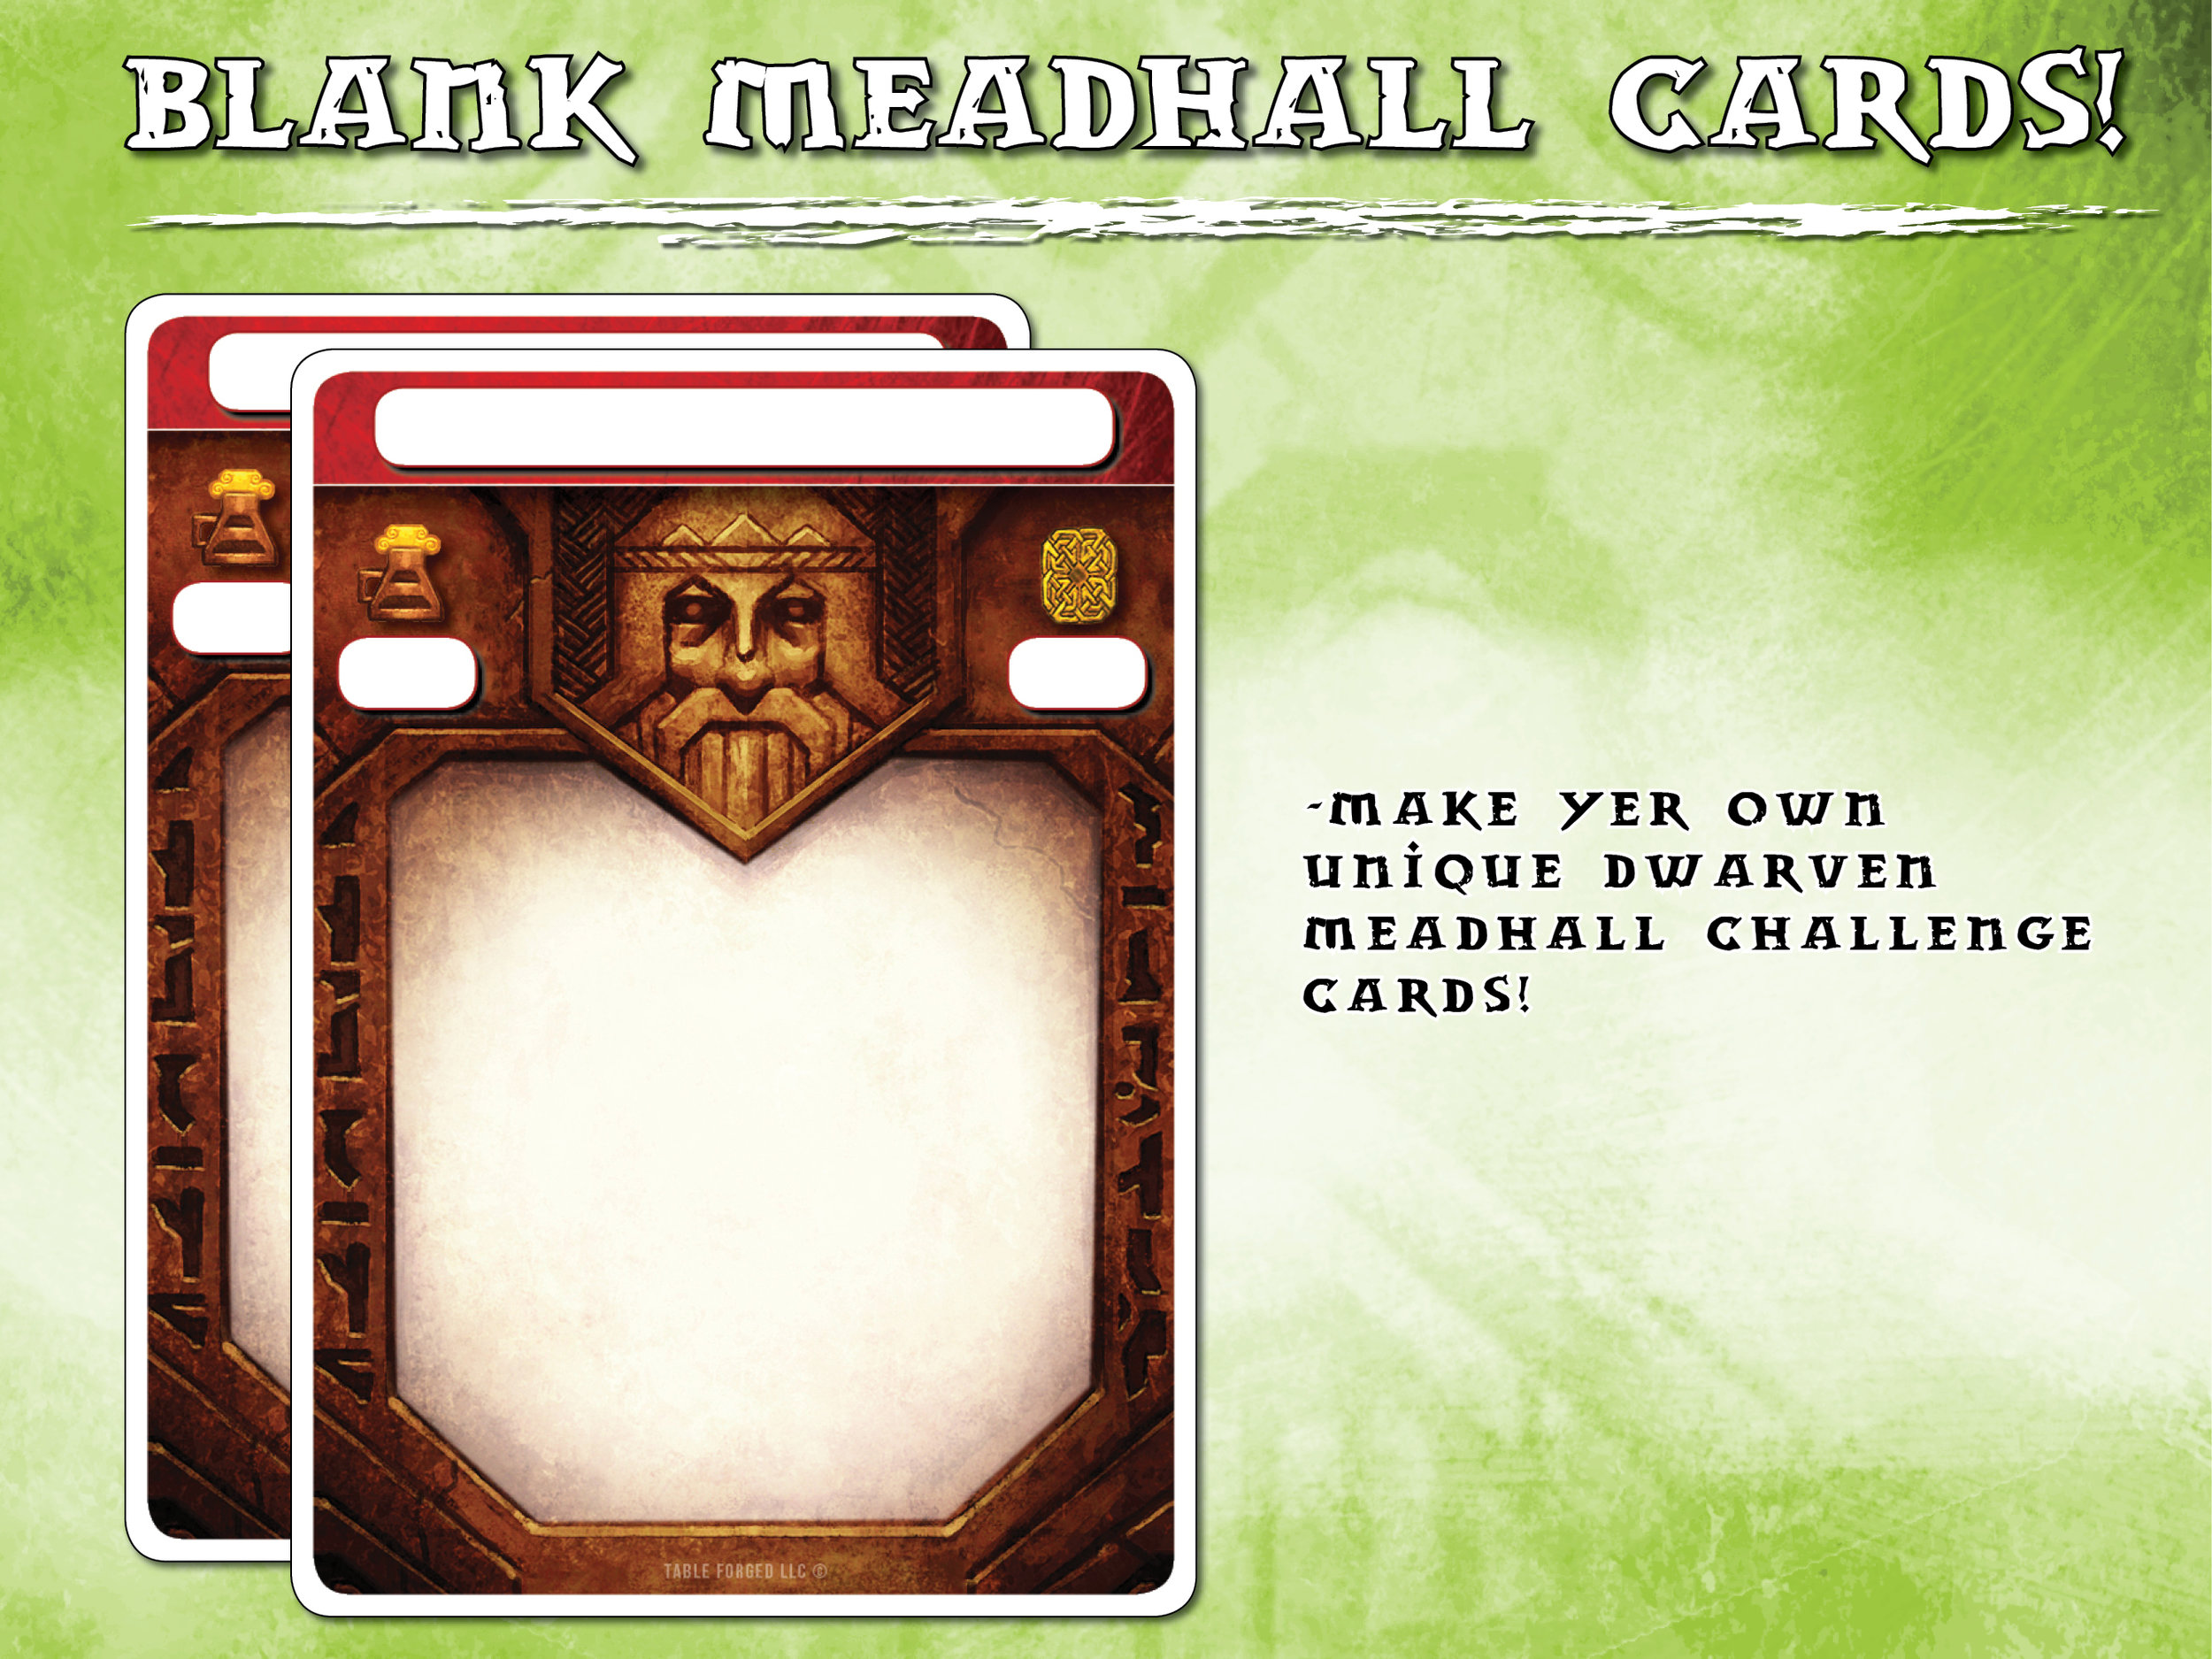 blank meadhall cards.jpg